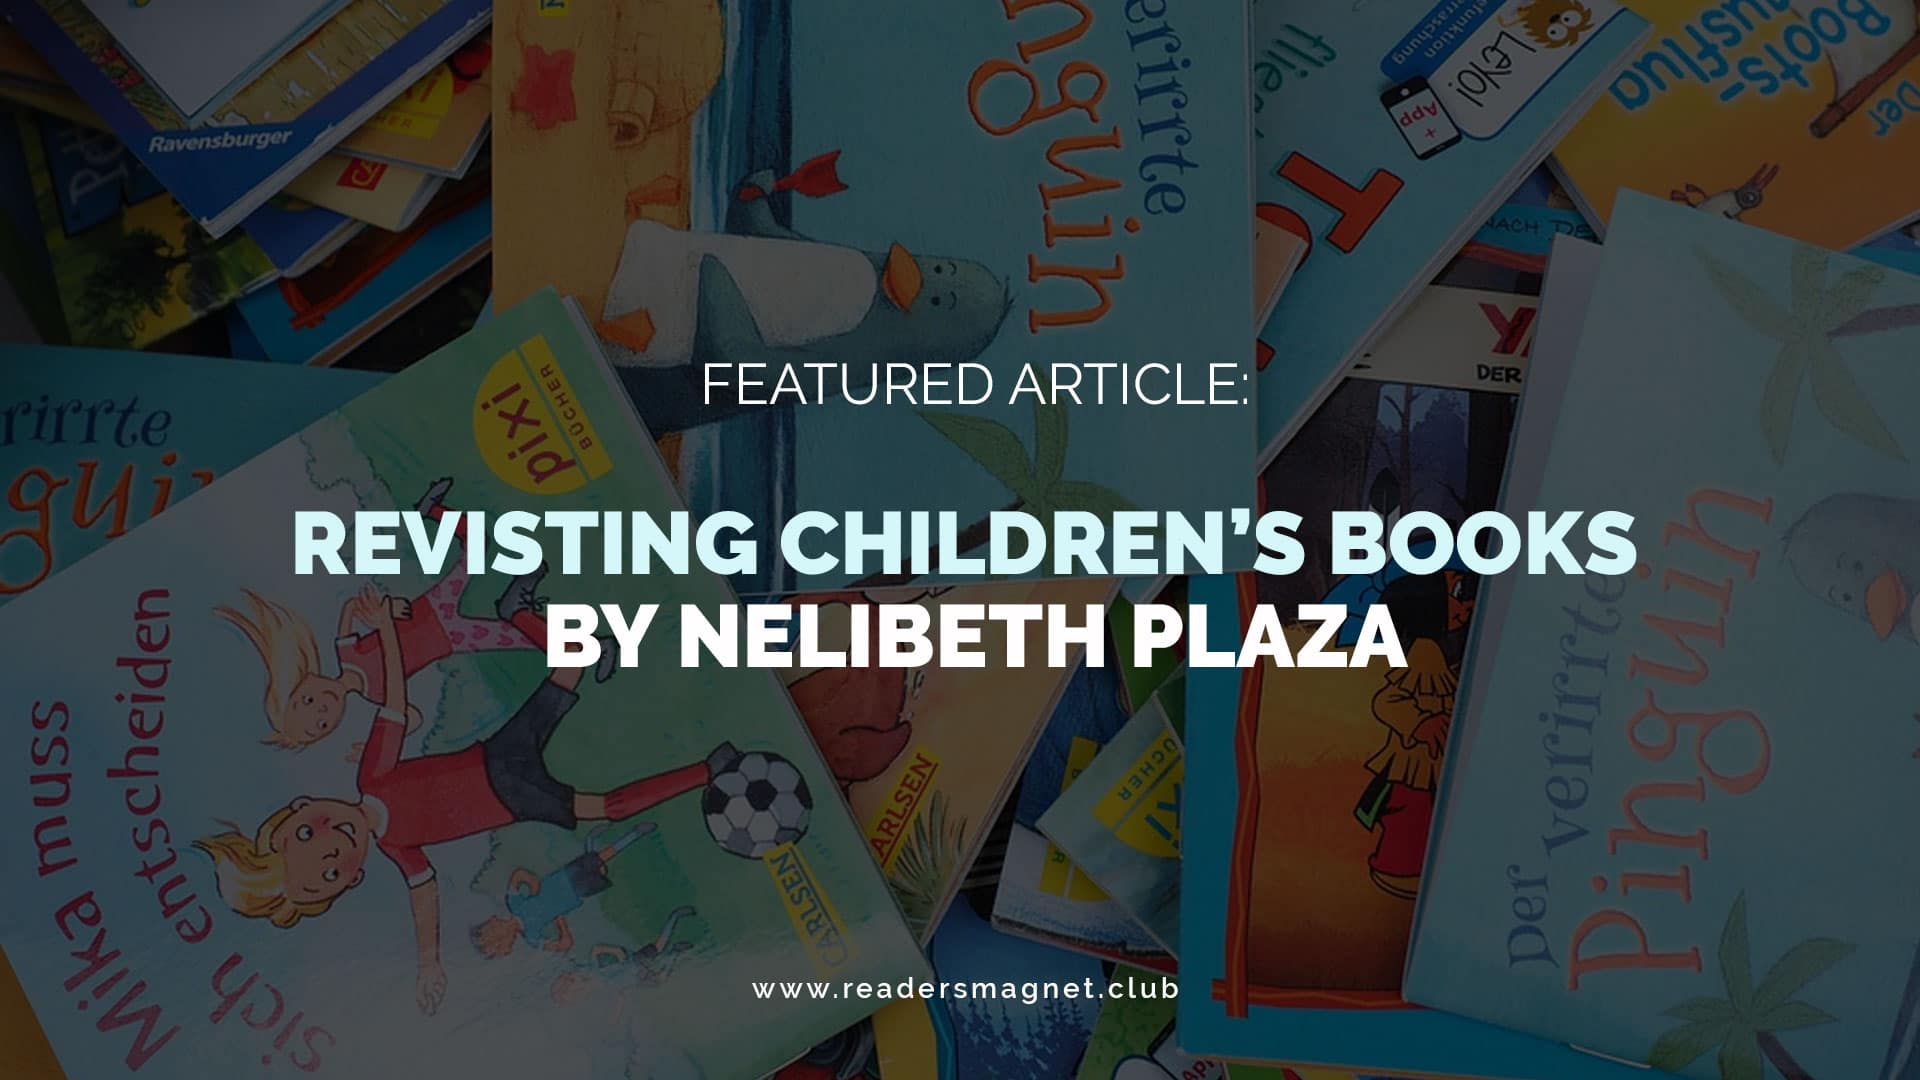 Featured-Article-Revisting-Childrens-Books-by-Nelibeth-Plaza banner